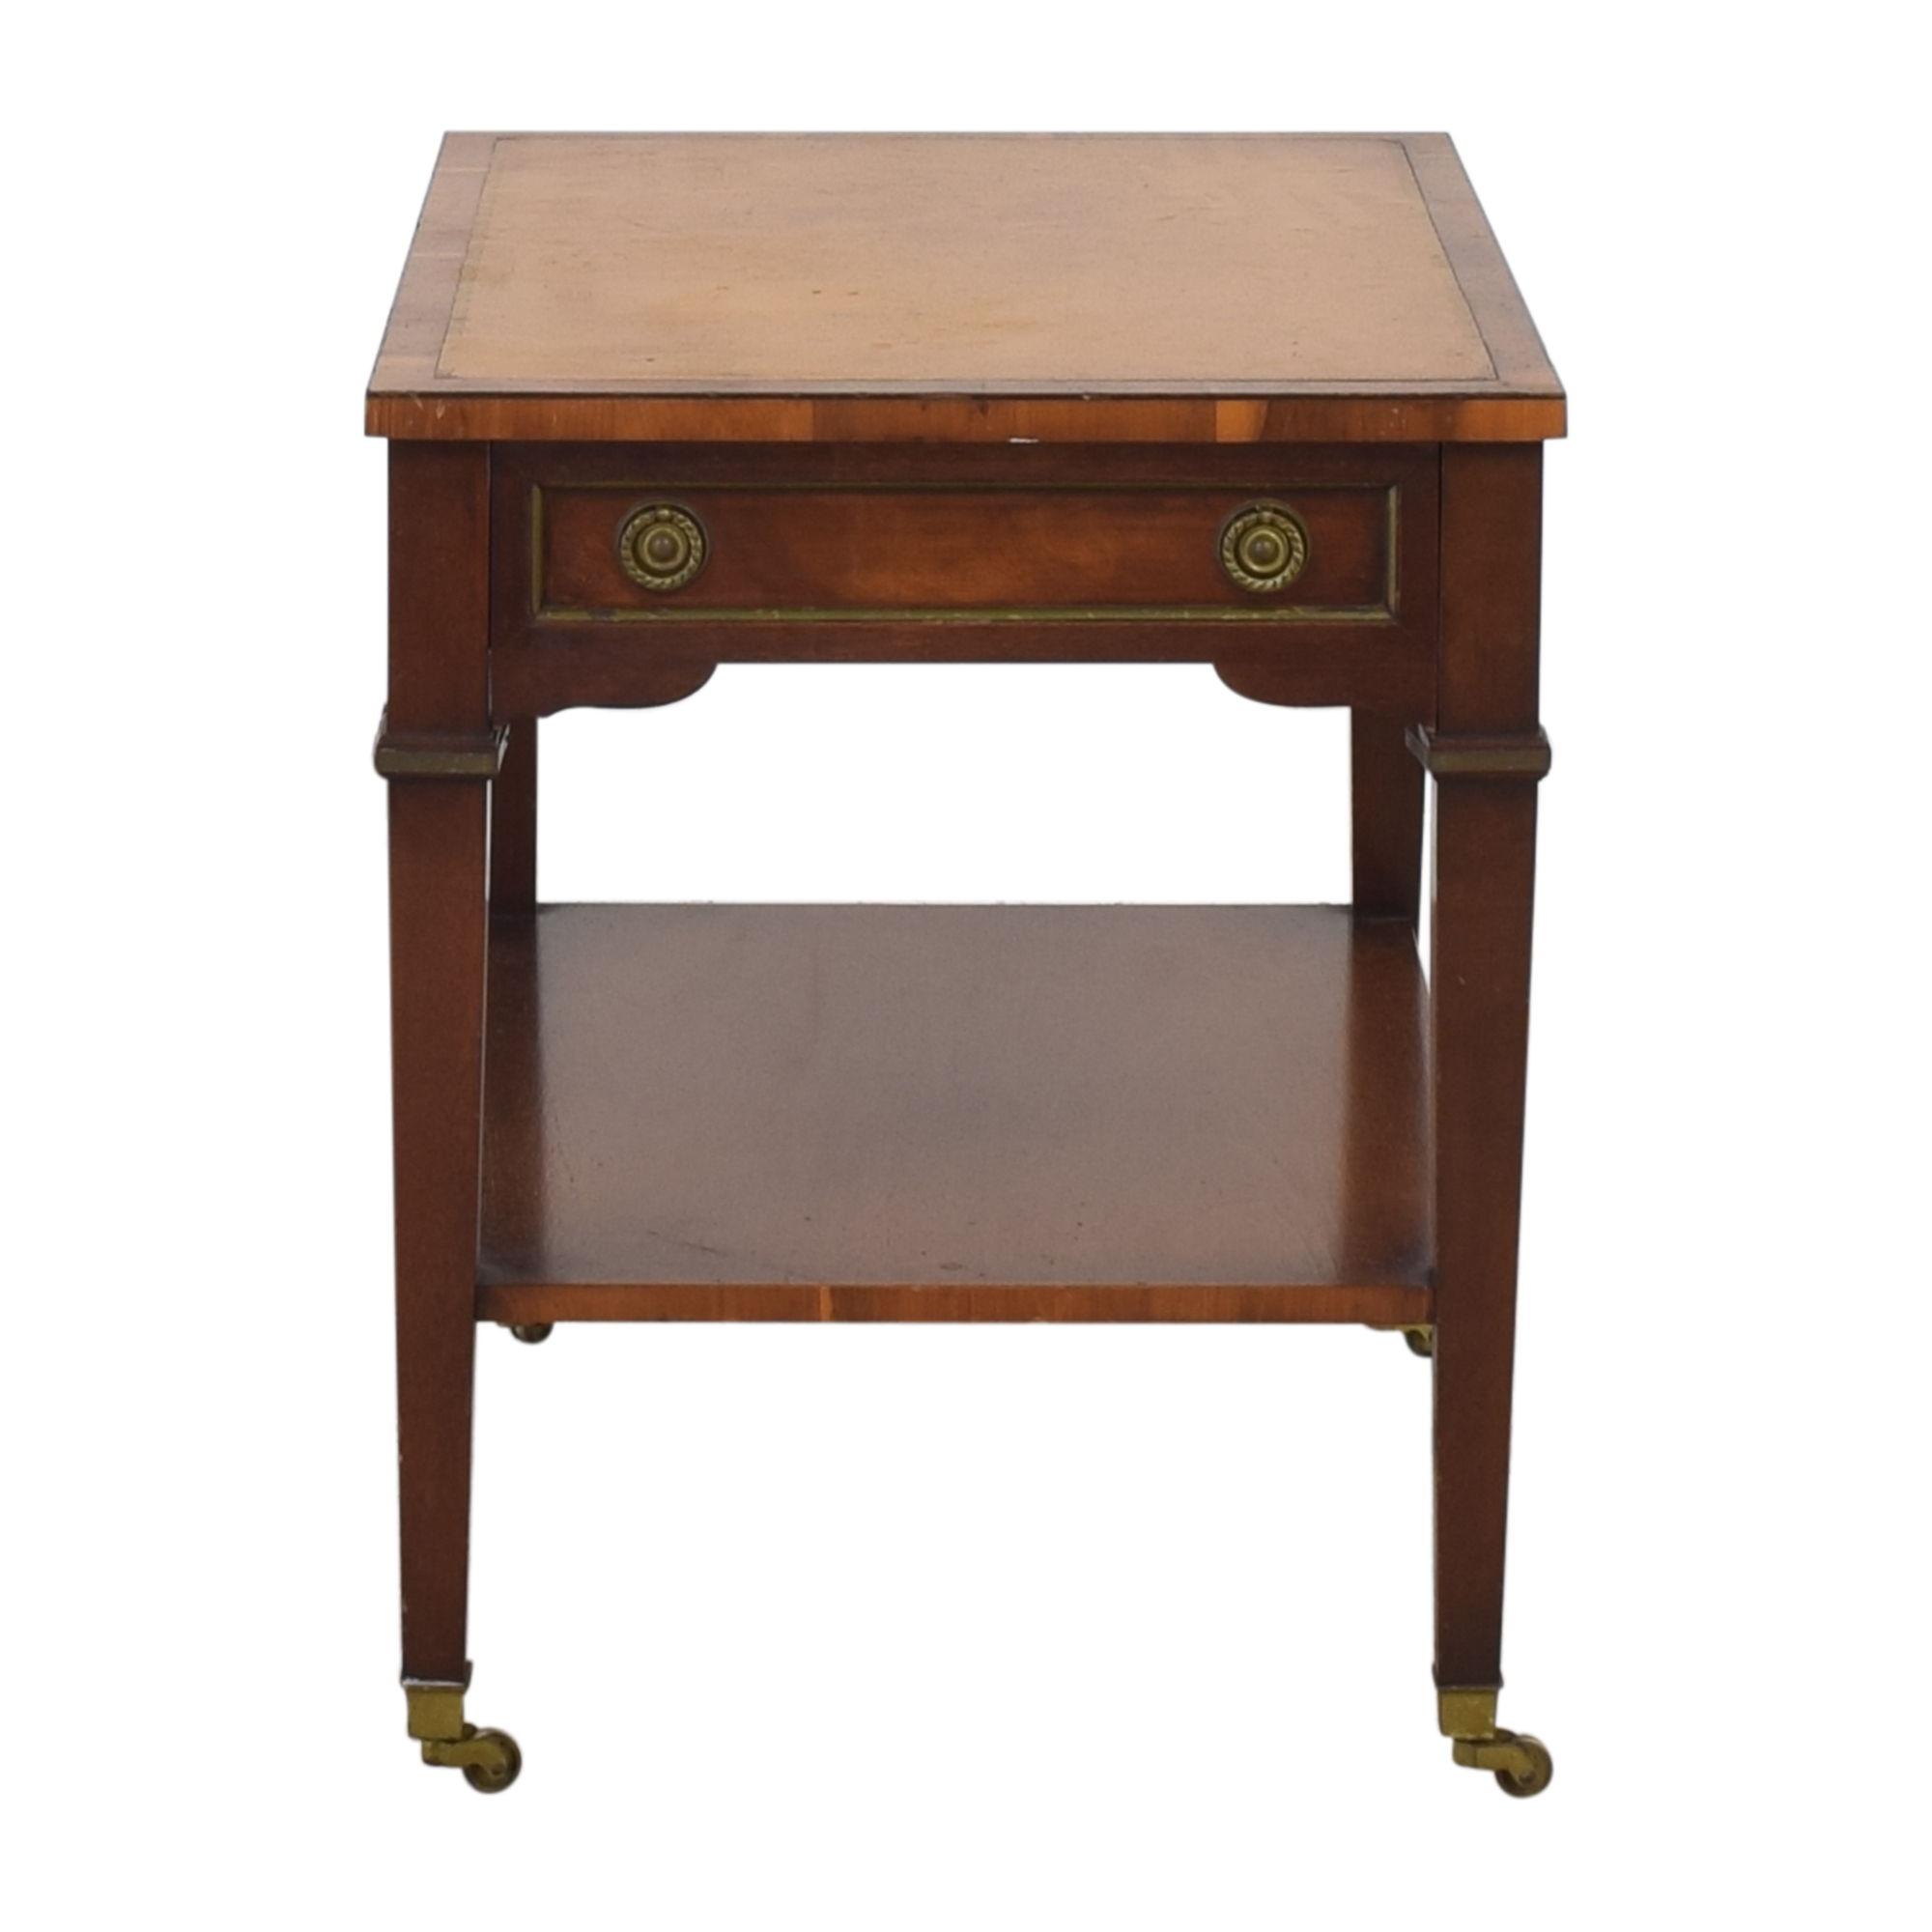 Henredon Furniture Henredon Vintage End Table Tables